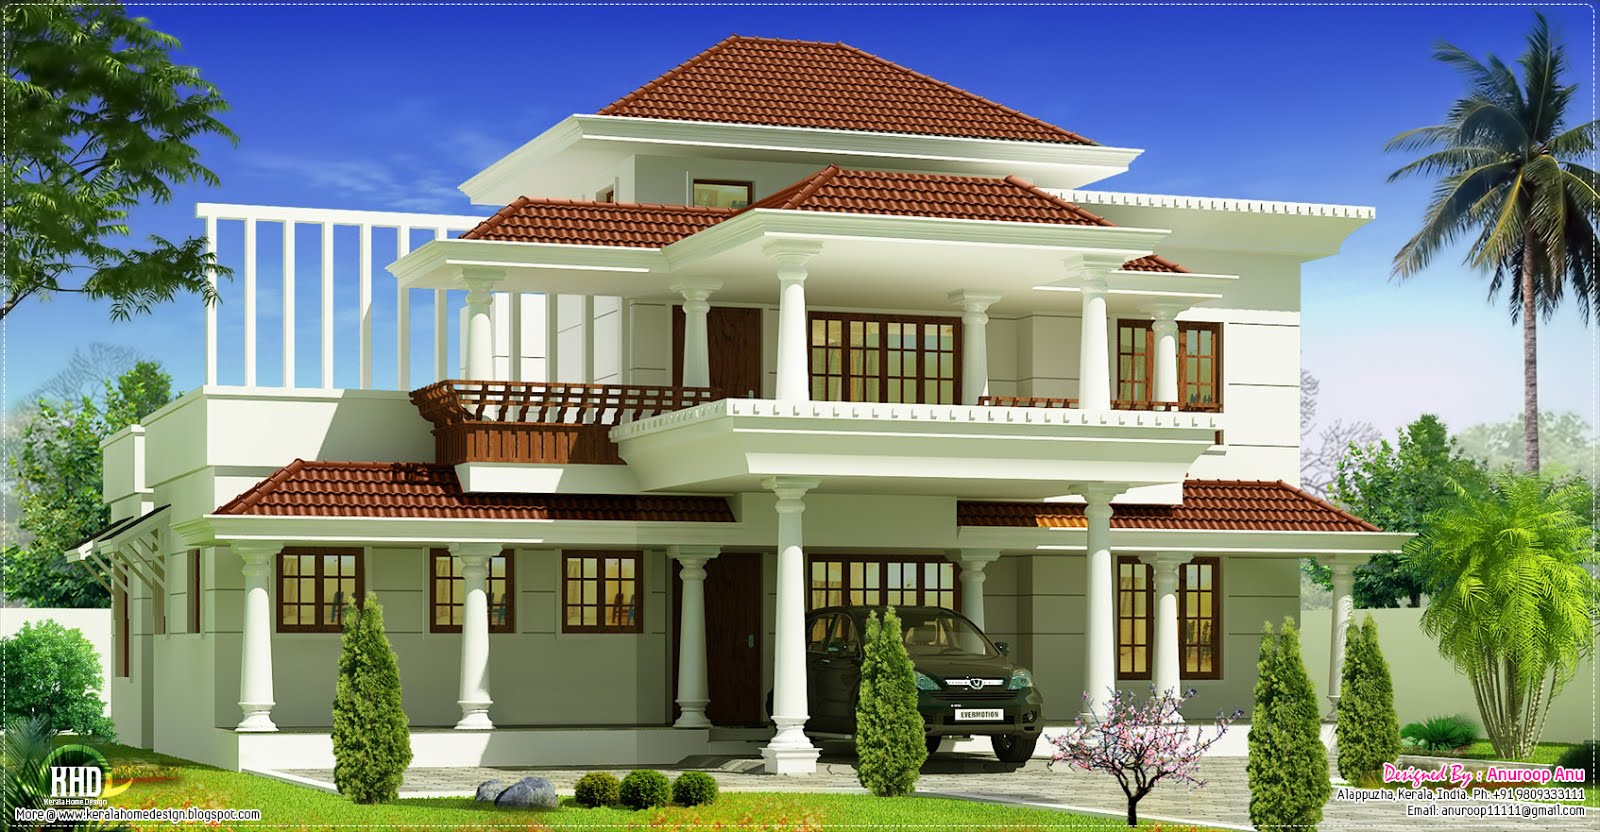 Kerala house models houses plans designs for Latest house designs in kerala